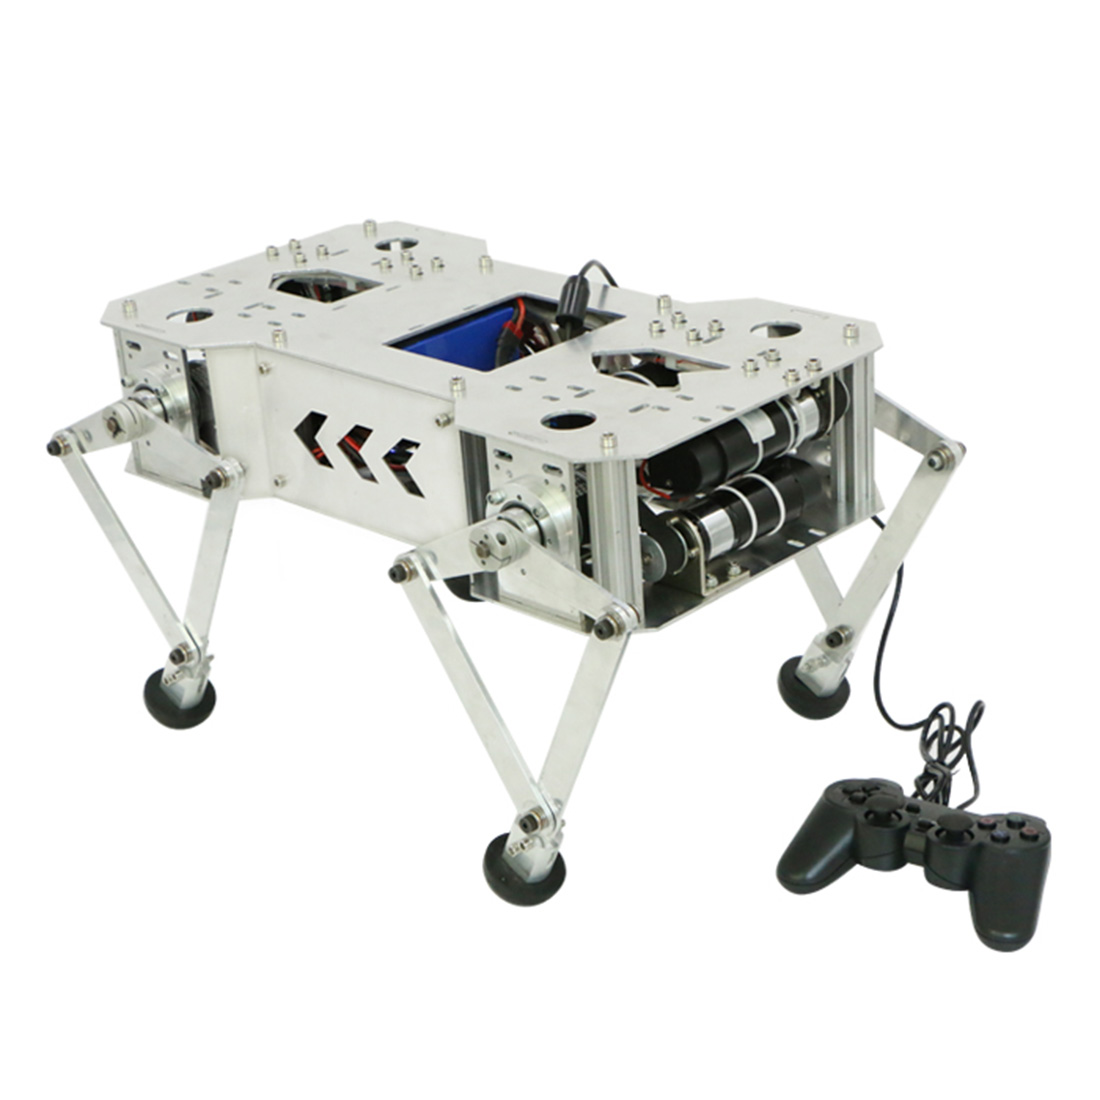 Programmable Metal Mechanical Dog Bionic Quadruped Crawling Robot Toy Brain Toy For Children Kids Educational Toys Birthday Gift